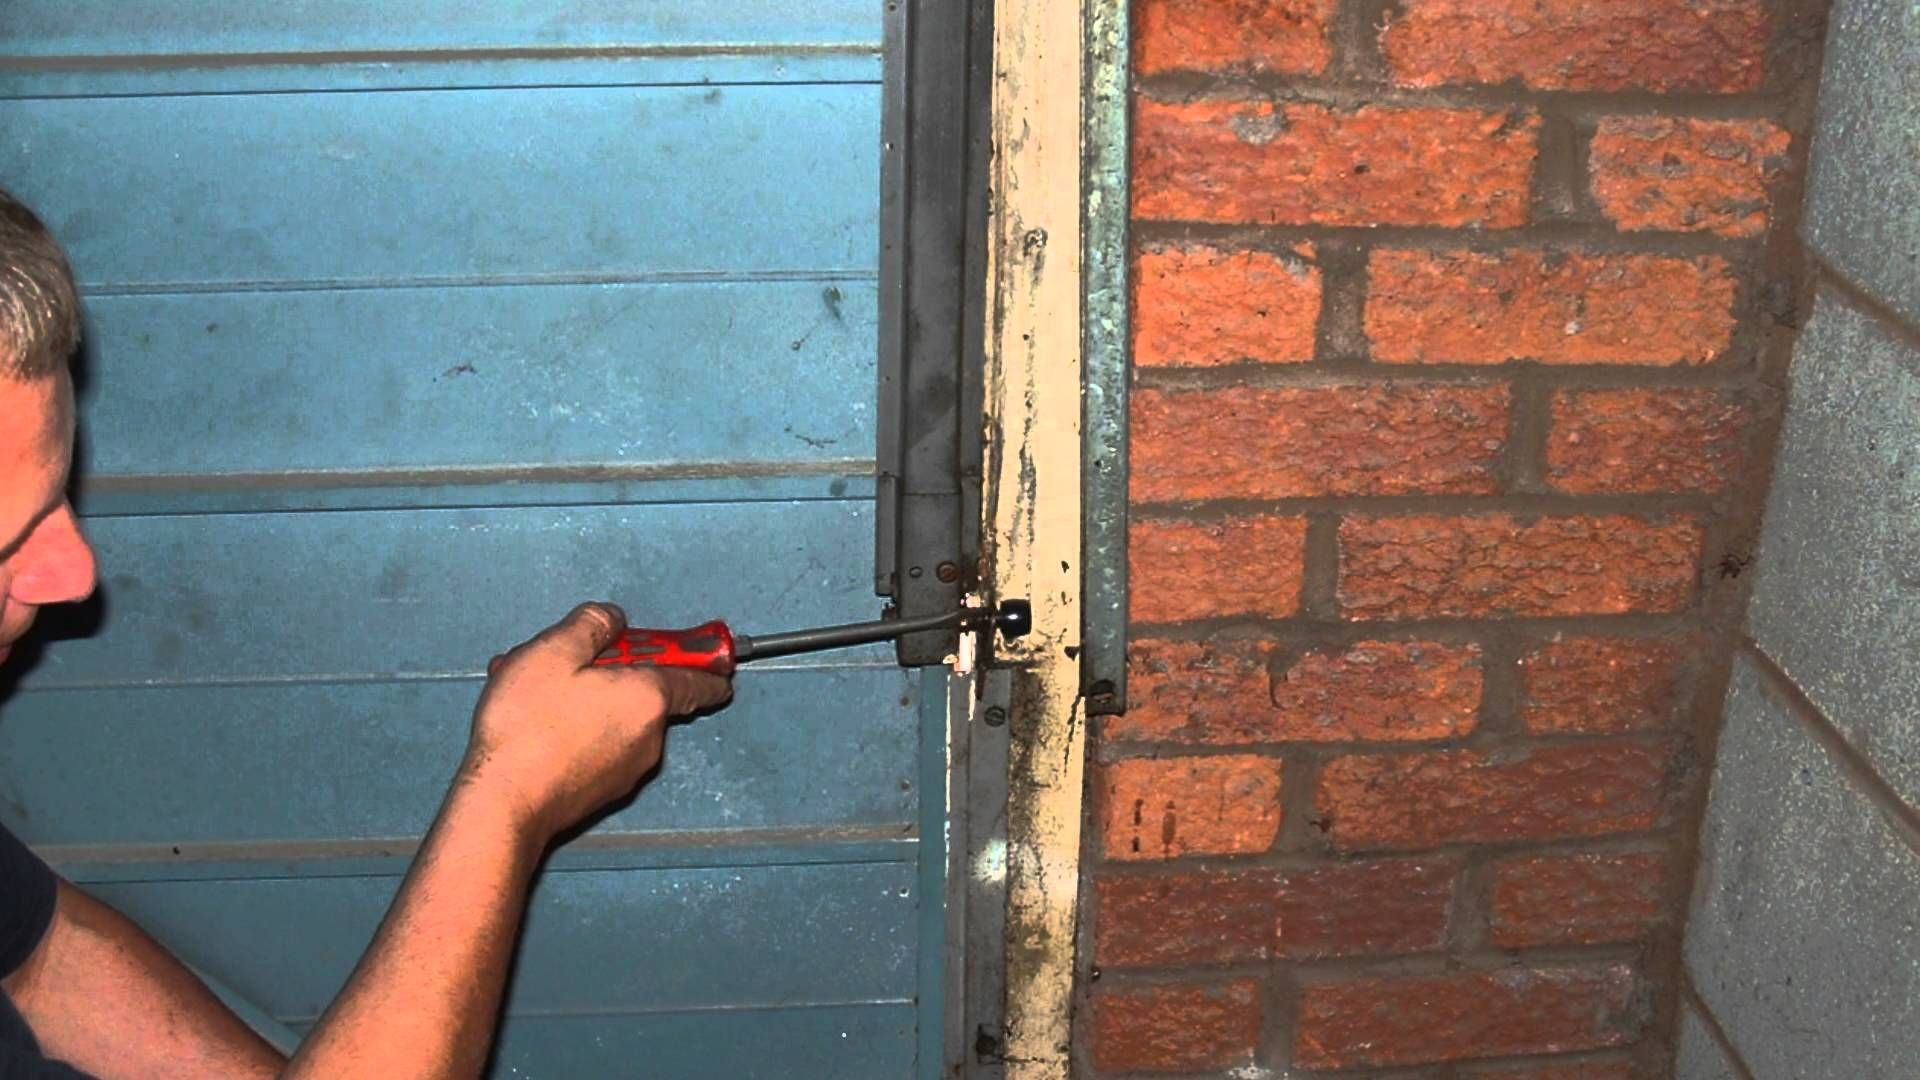 How to replace springs cables on a garador westland mk2 mk3c how to replace springs cables on a garador westland garage door spring box rubansaba